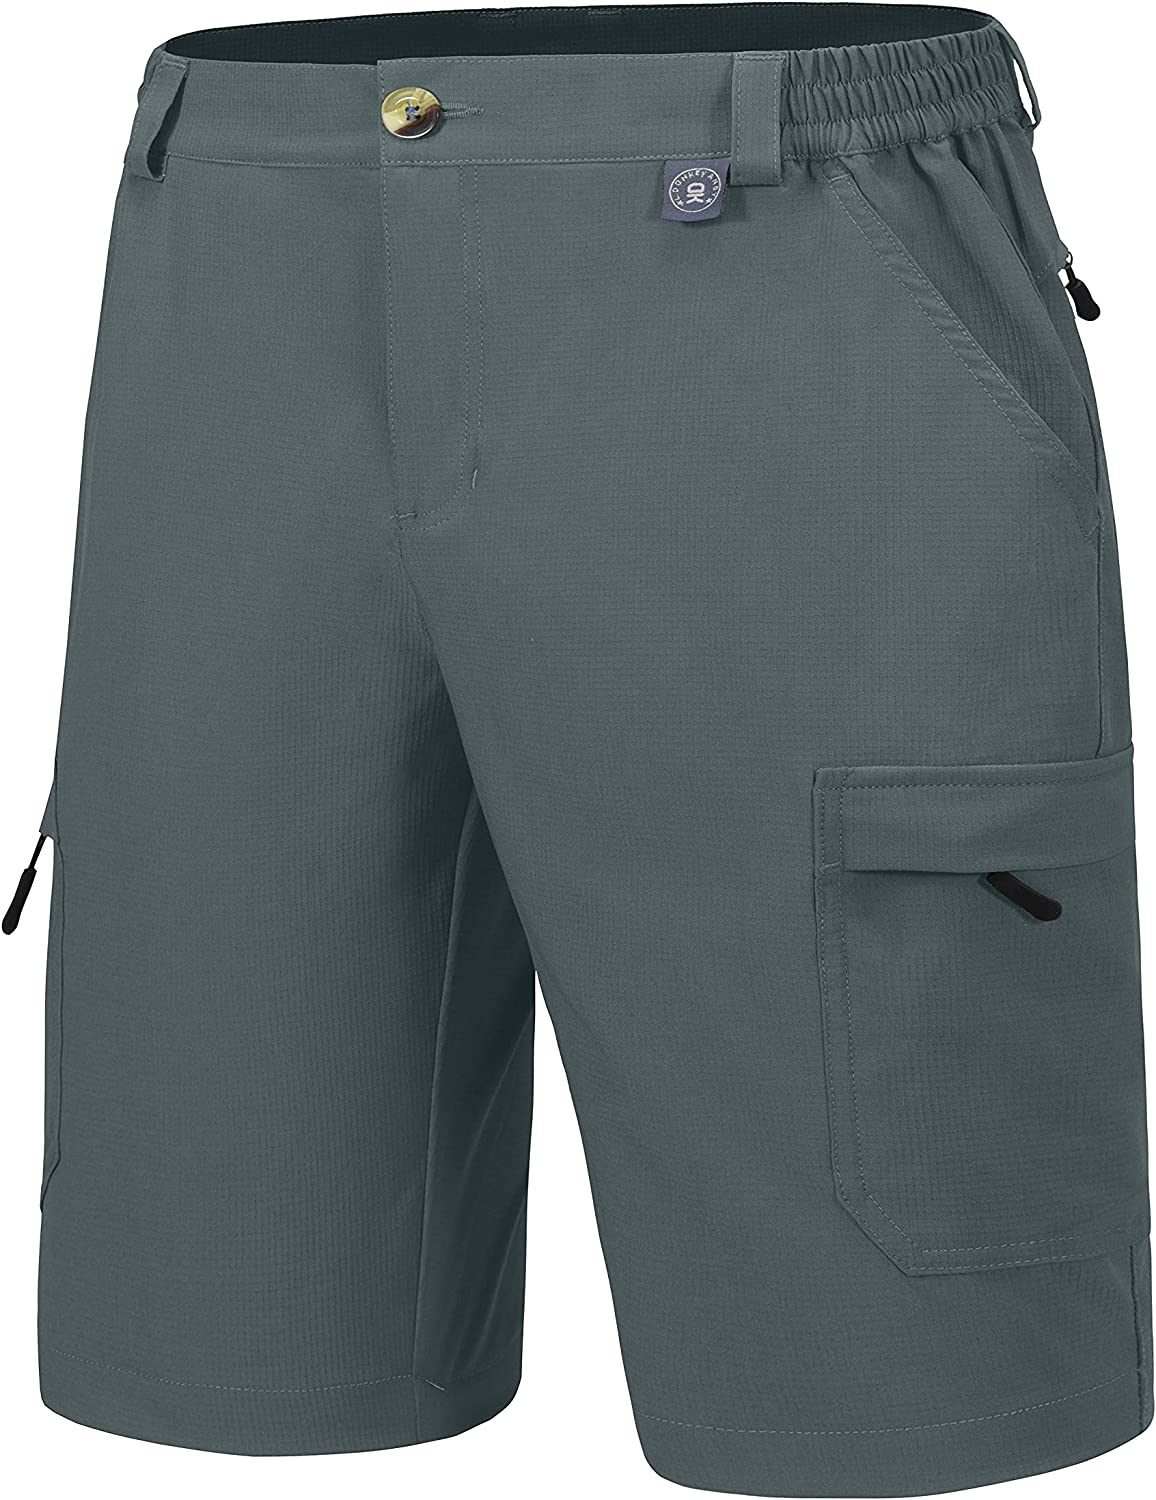 Little Donkey Andy 10 Inch Quick Sh Hiking Dry Lightweight 1 year Max 46% OFF warranty Cargo